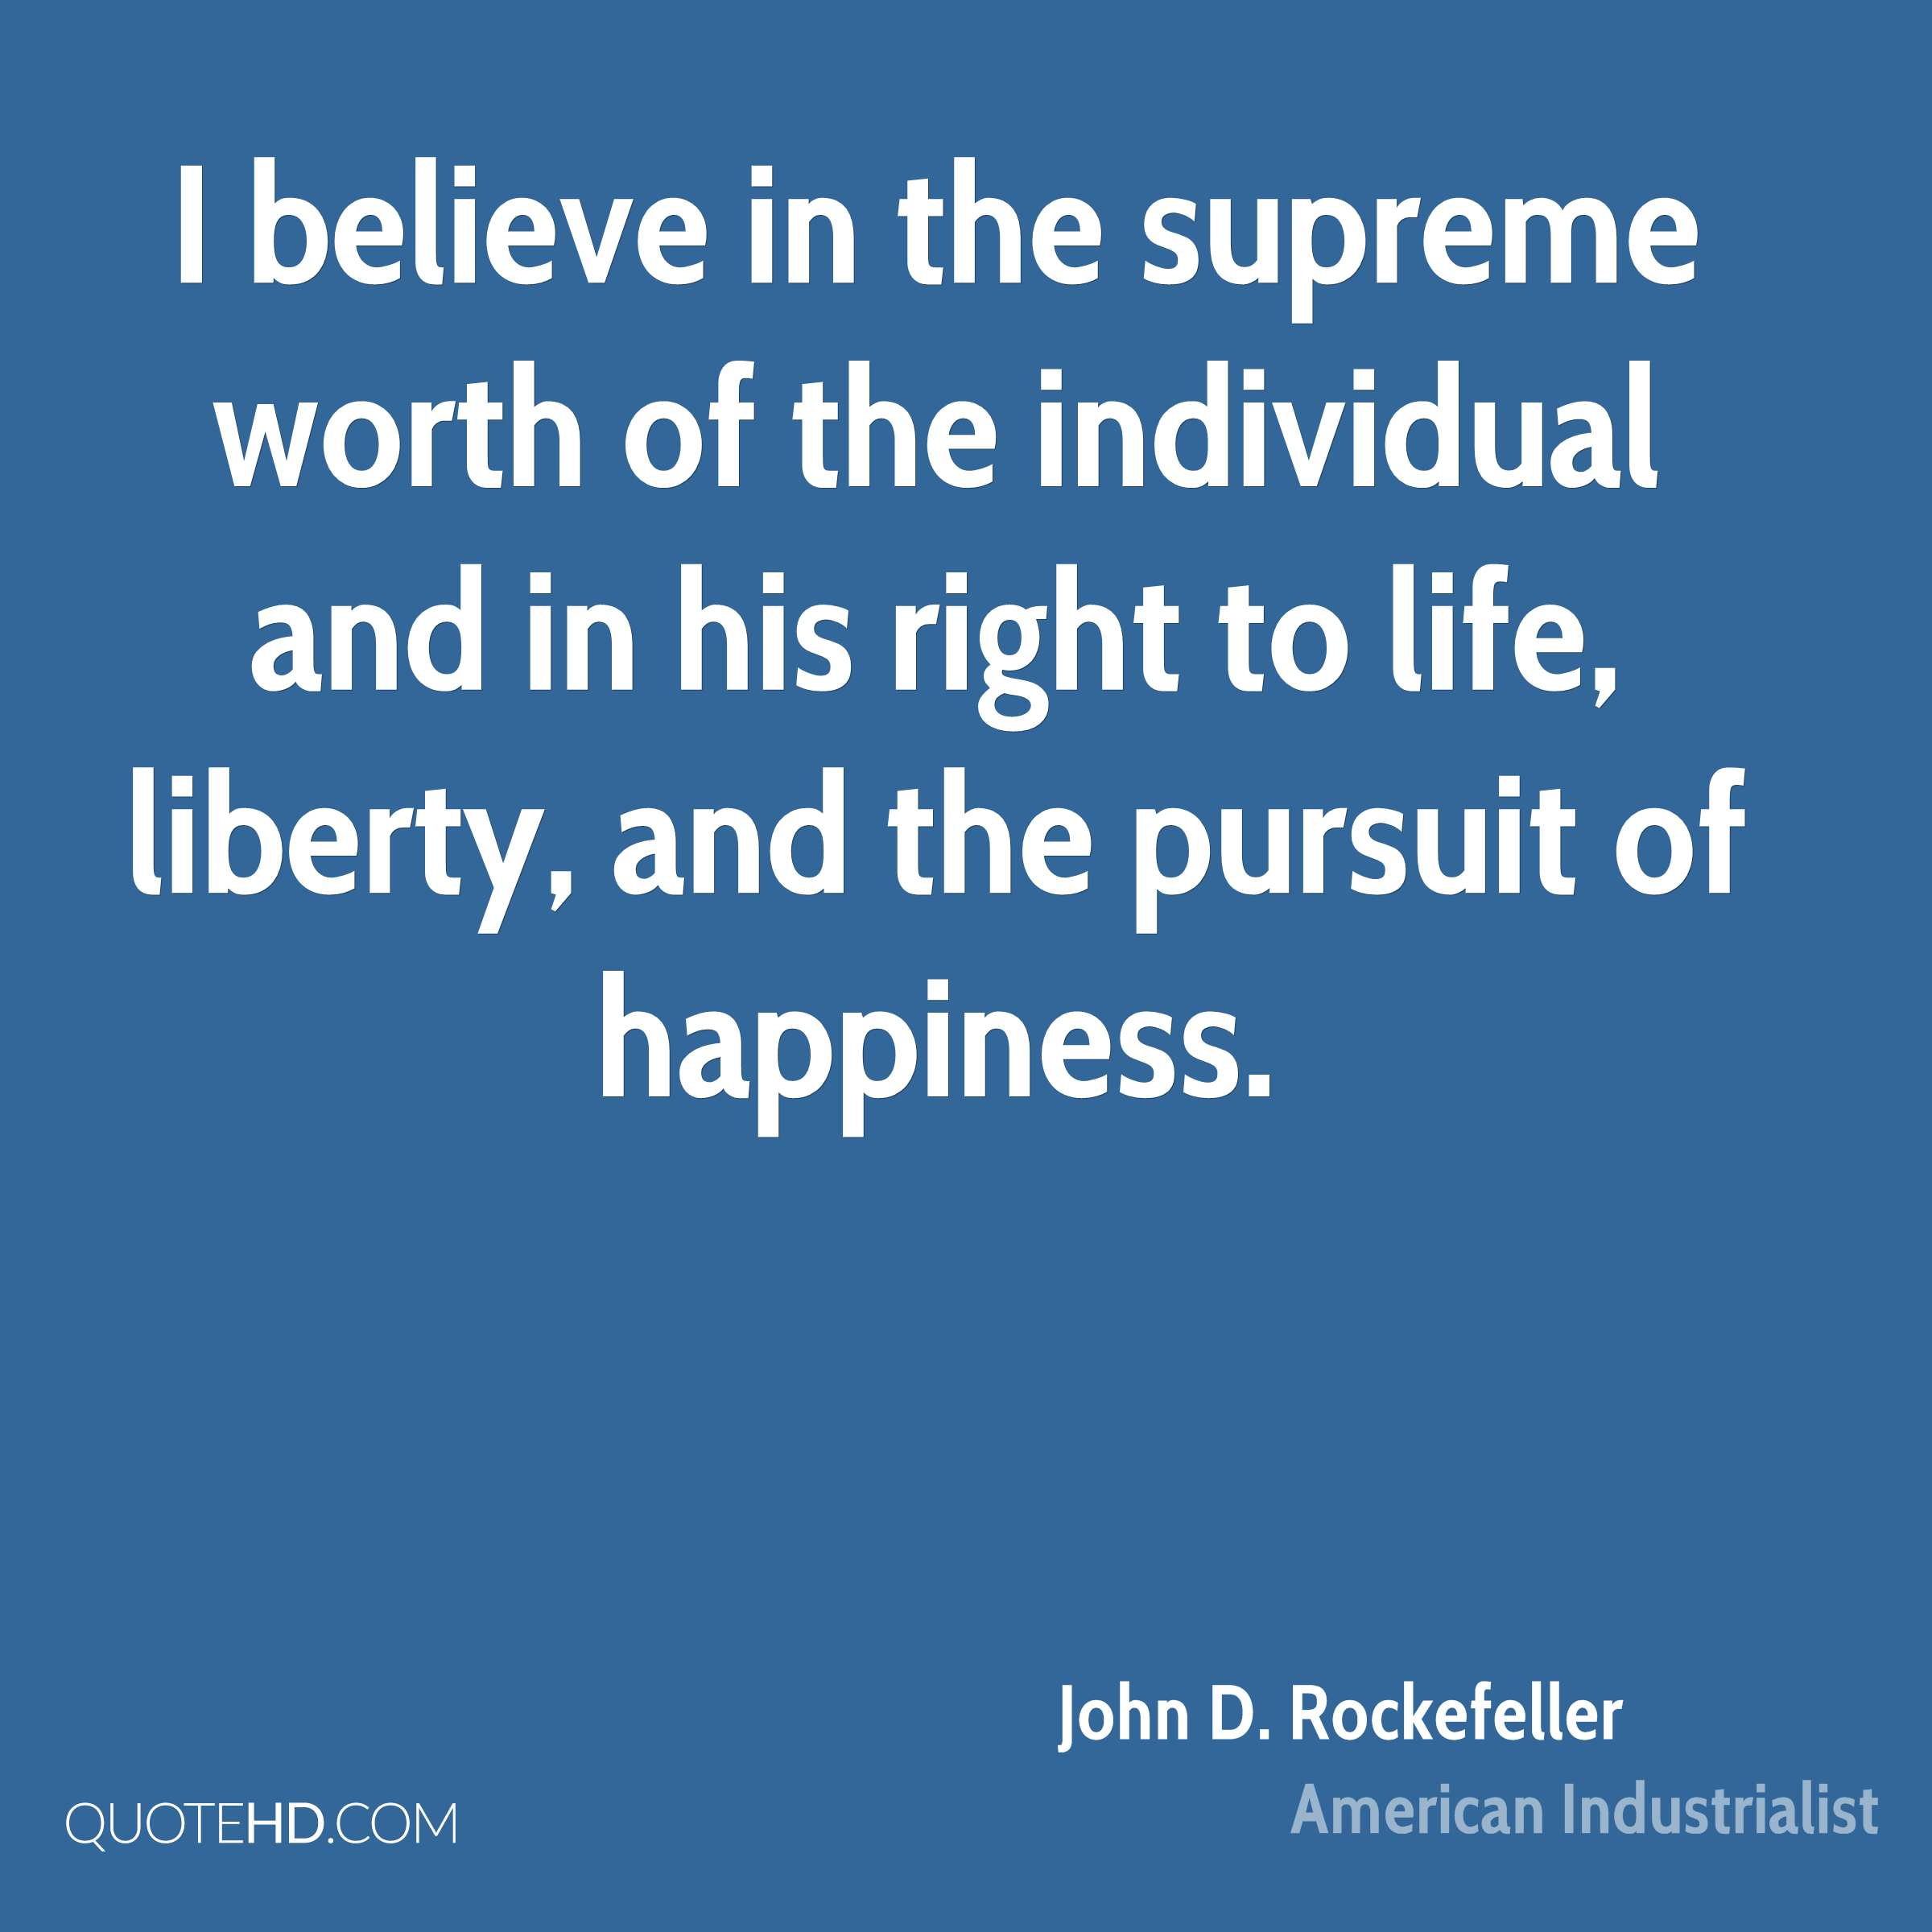 Life Liberty And The Pursuit Of Happiness Quote John Drockefeller Quotes  Quotehd